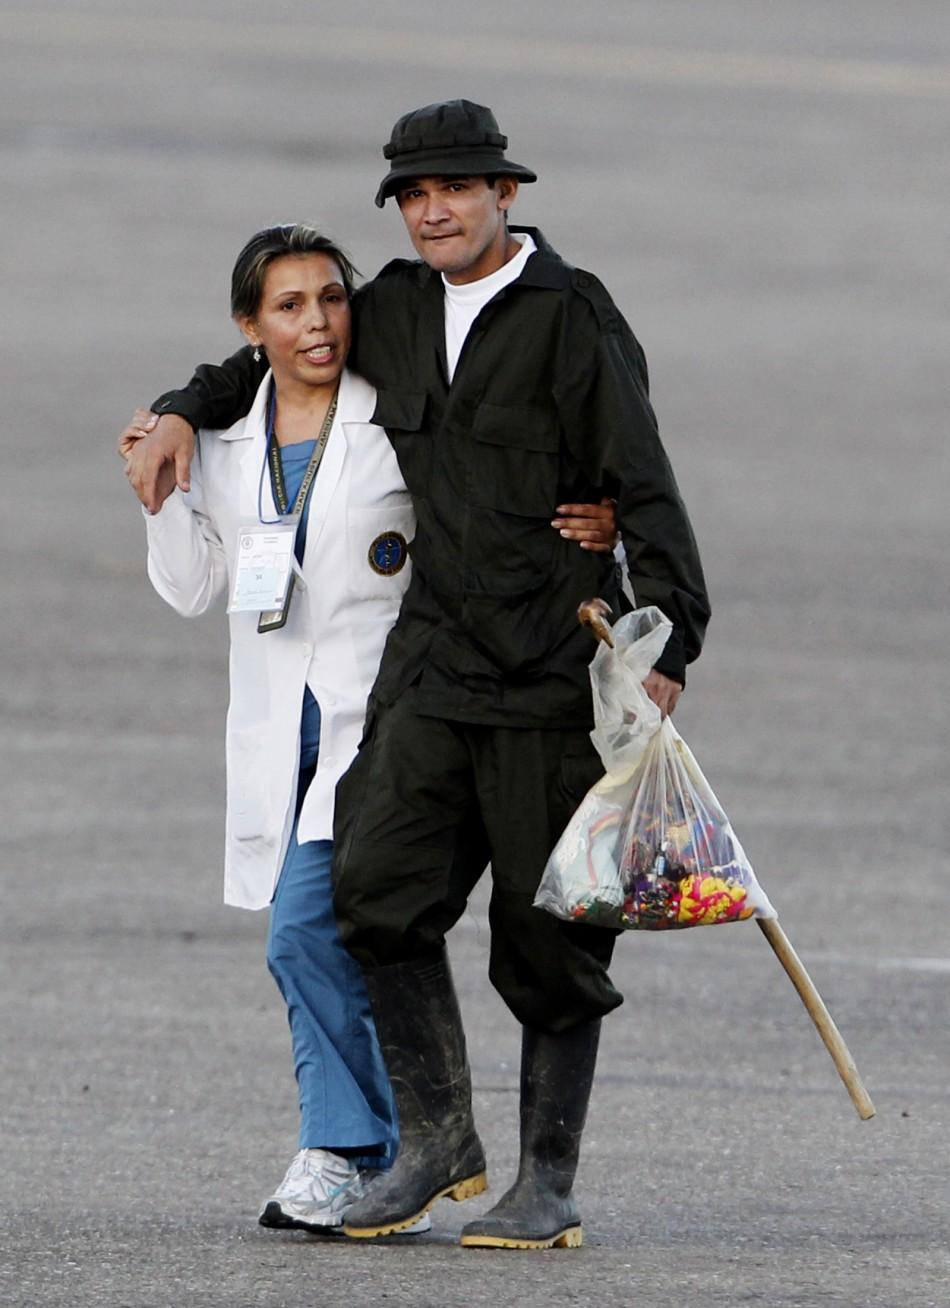 A recently freed hostage walks with a medical personnel as they arrive at Villavicencio's airport